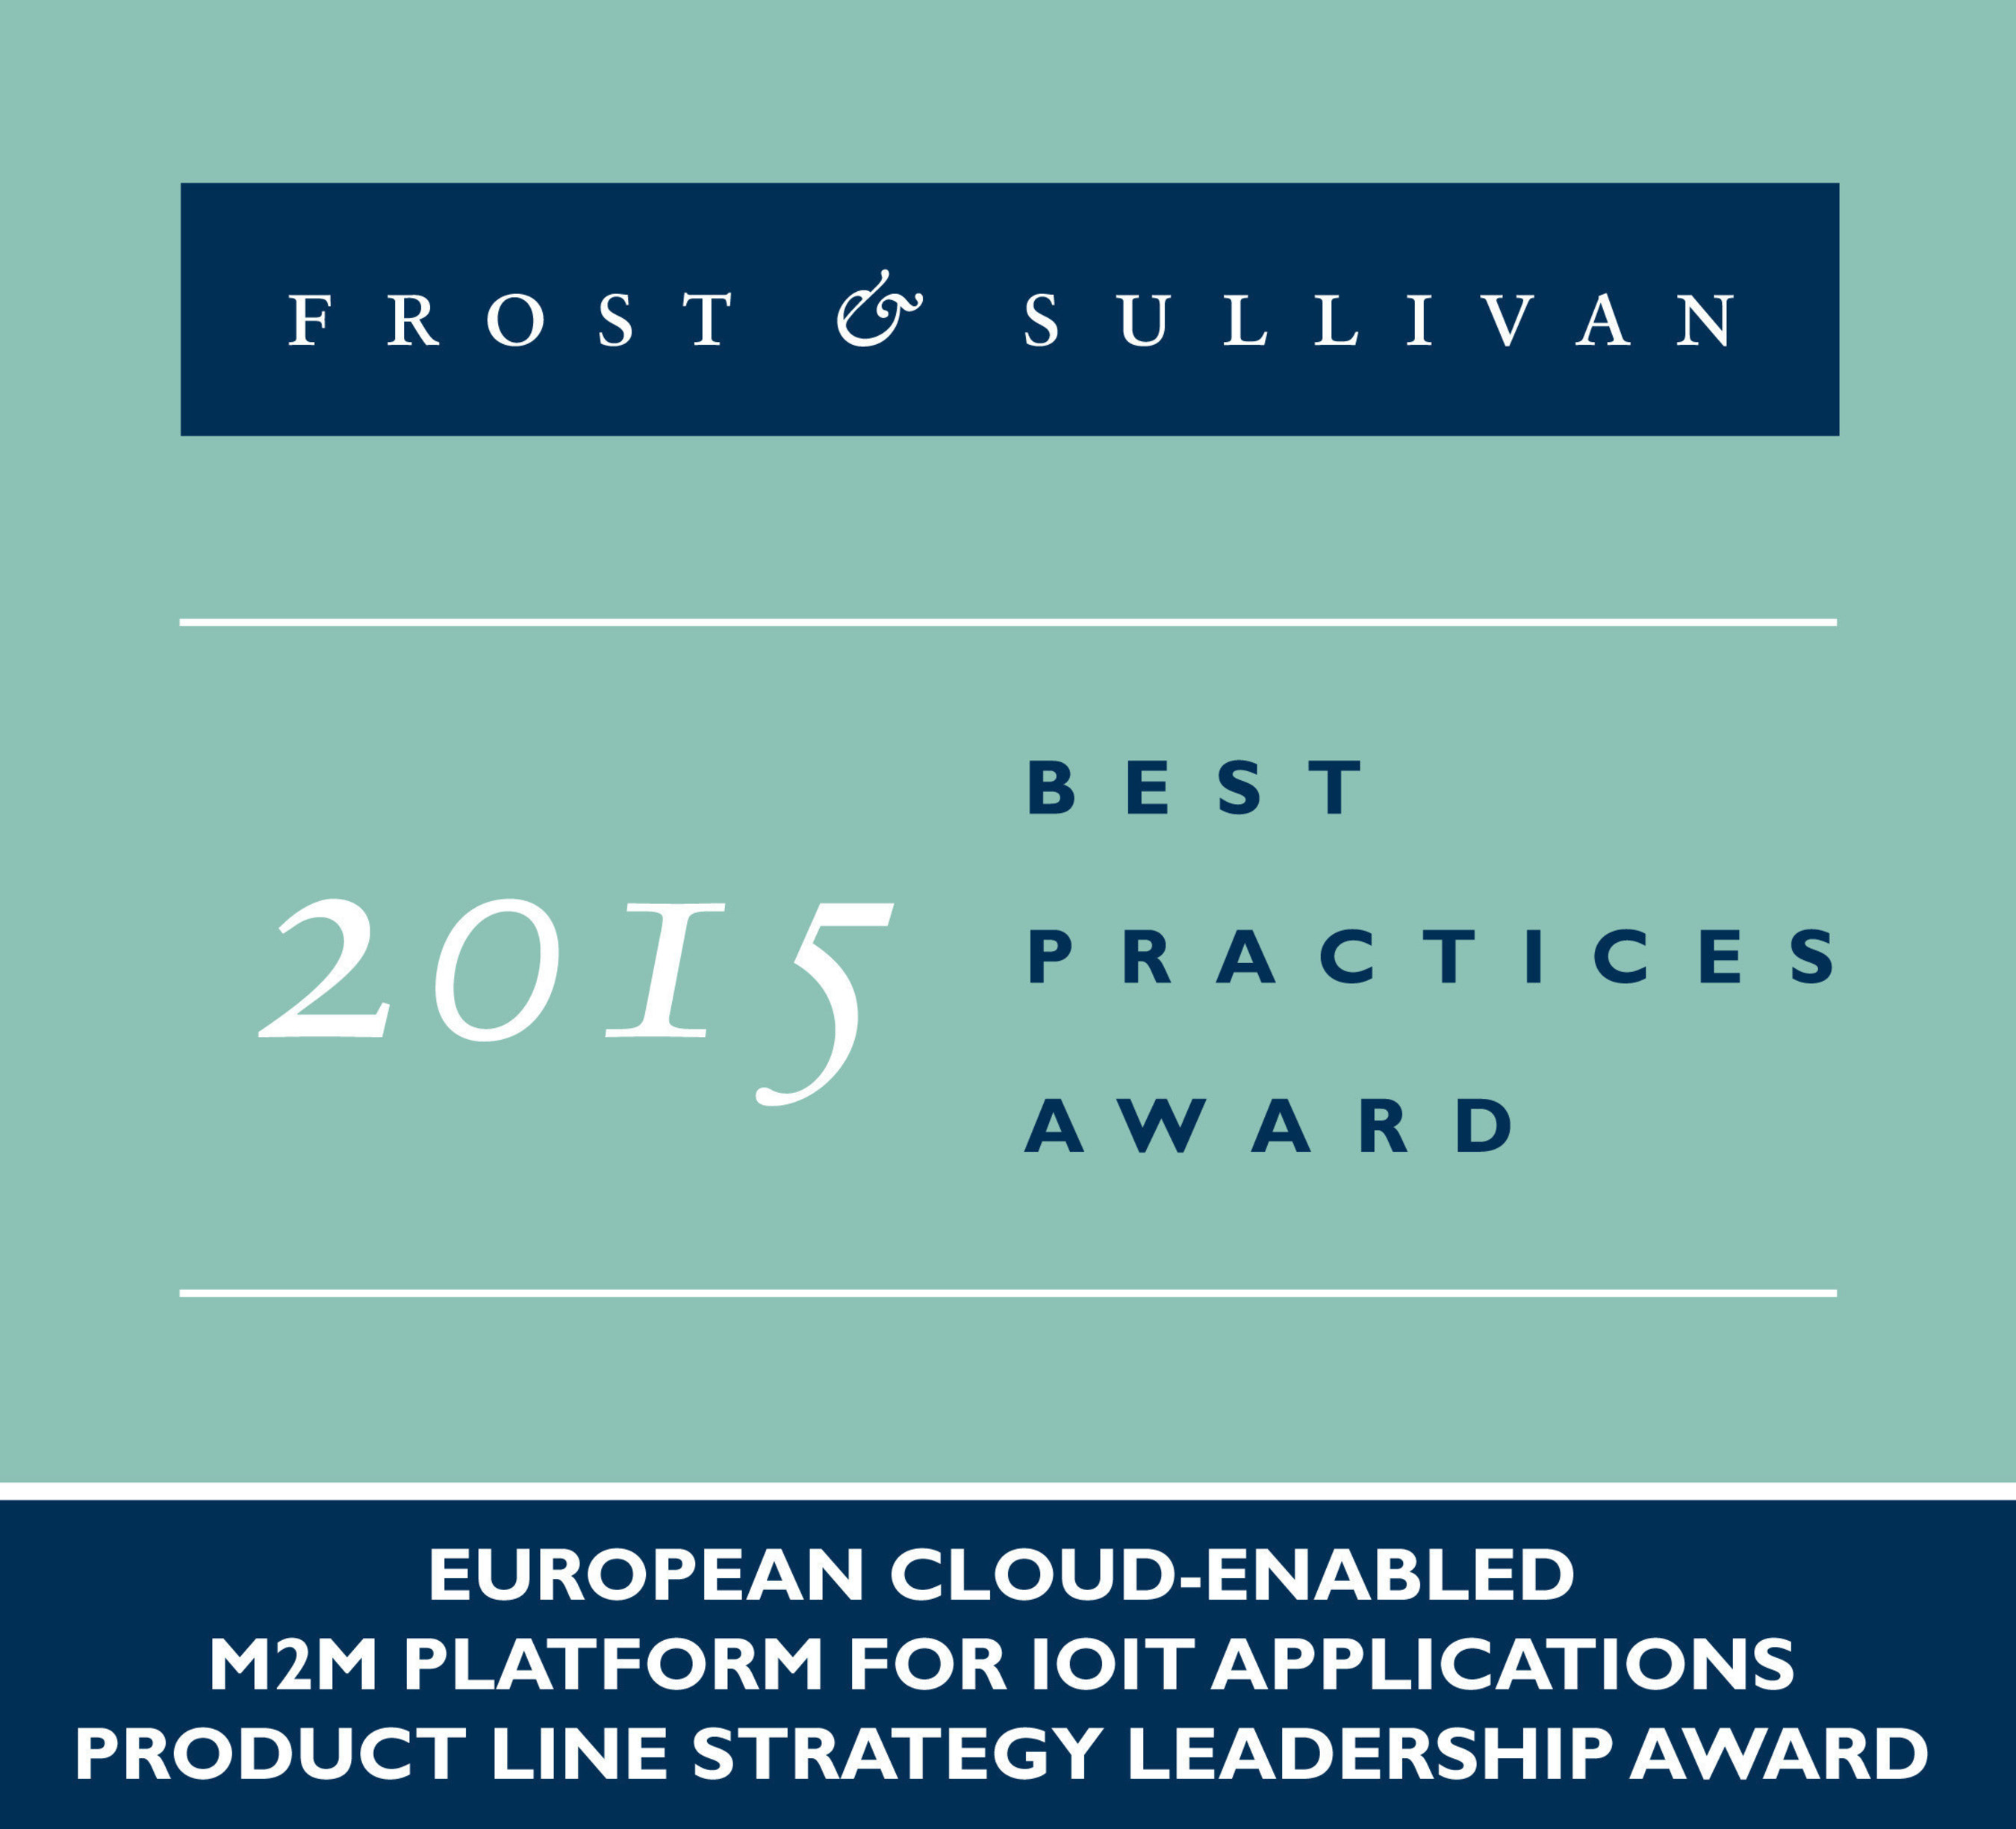 Frost & Sullivan Acclaims Eurotech for Redefining the Communications Space with its Cutting-edge